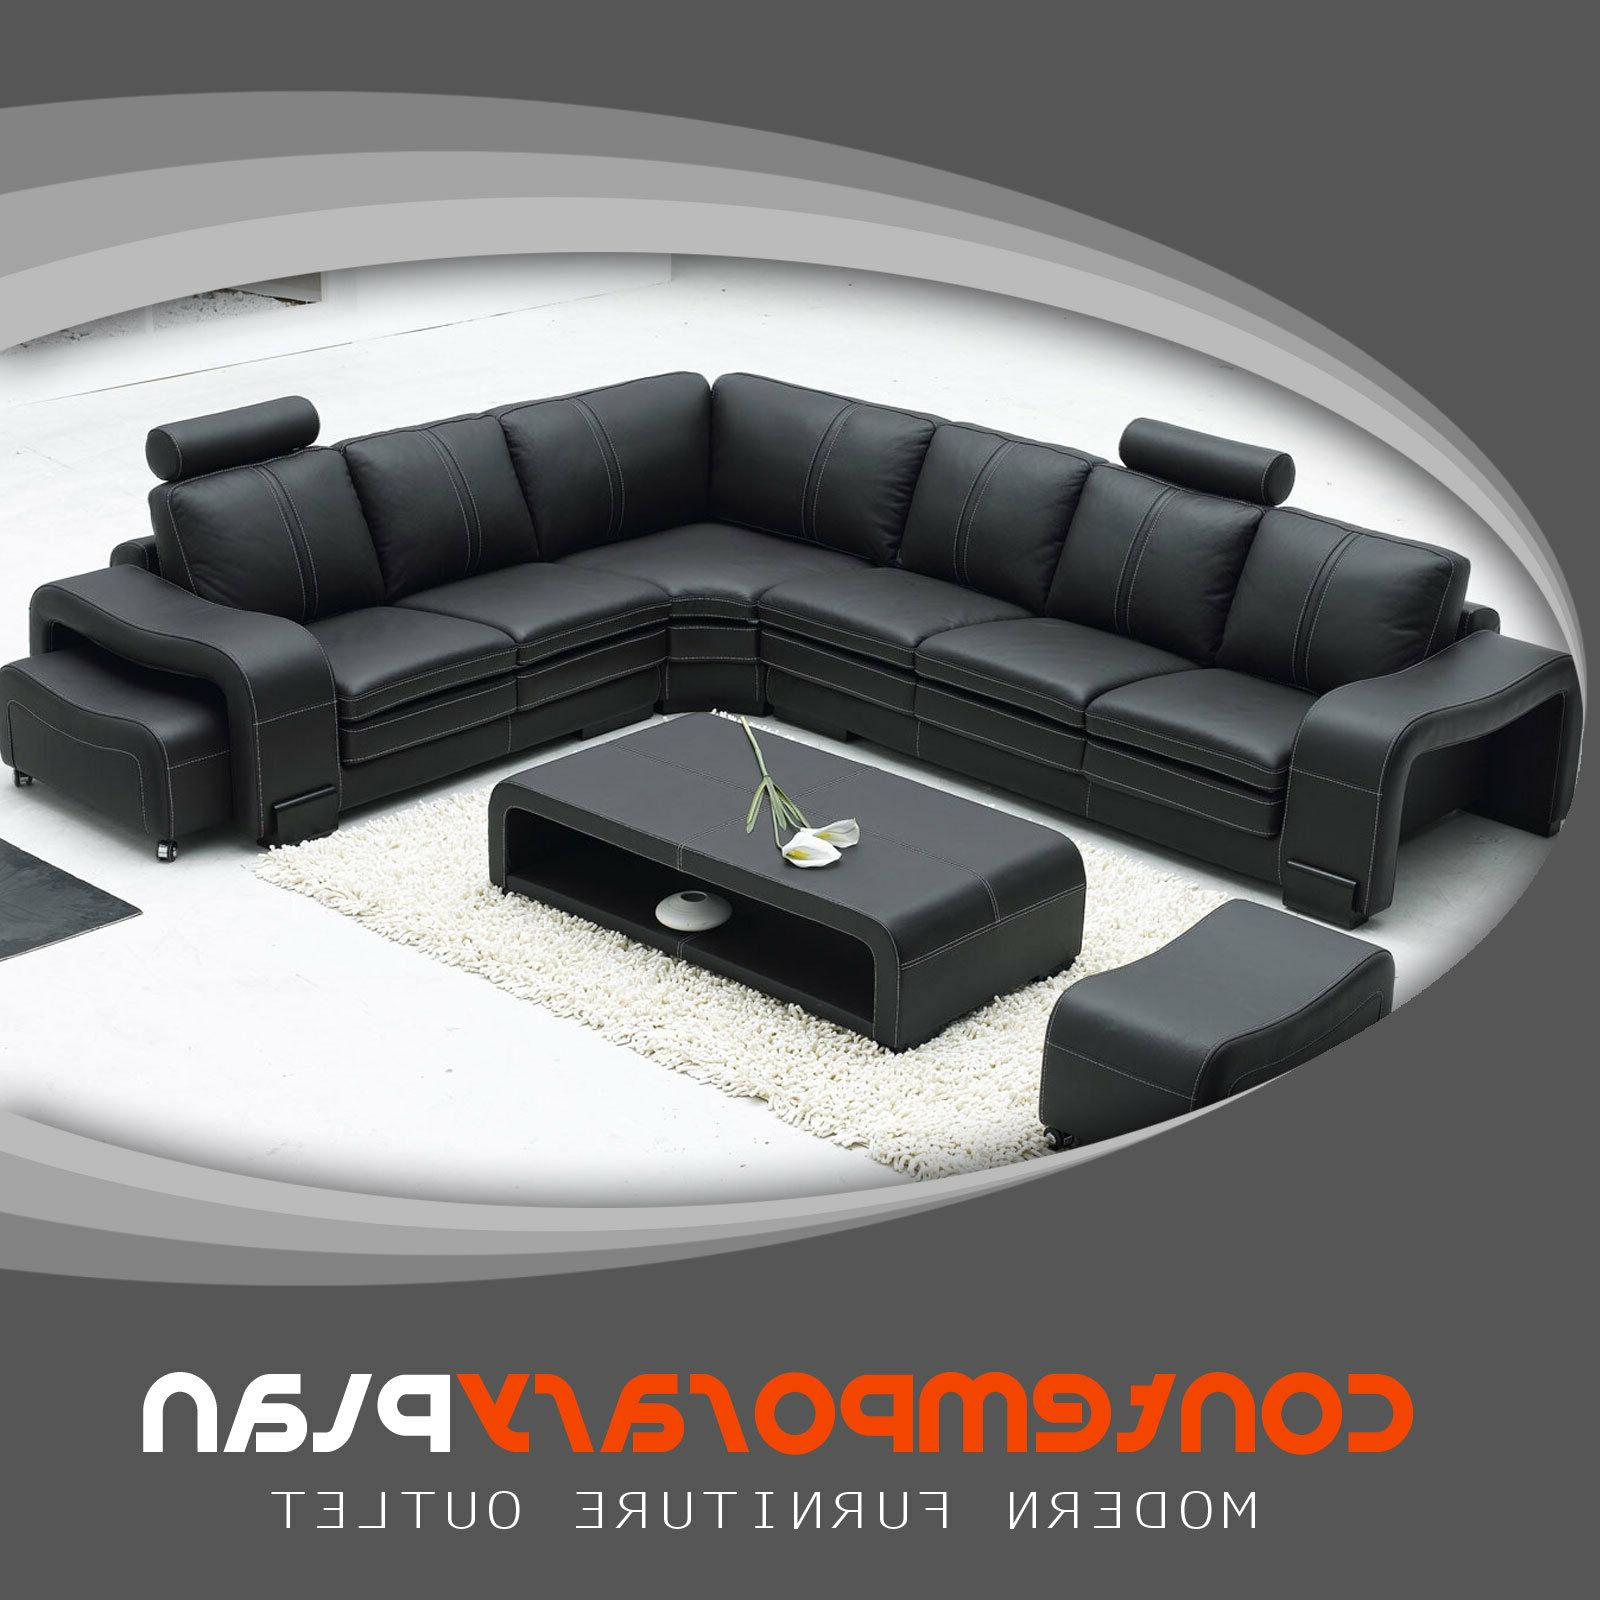 black italian leather sectional sofa with headrest